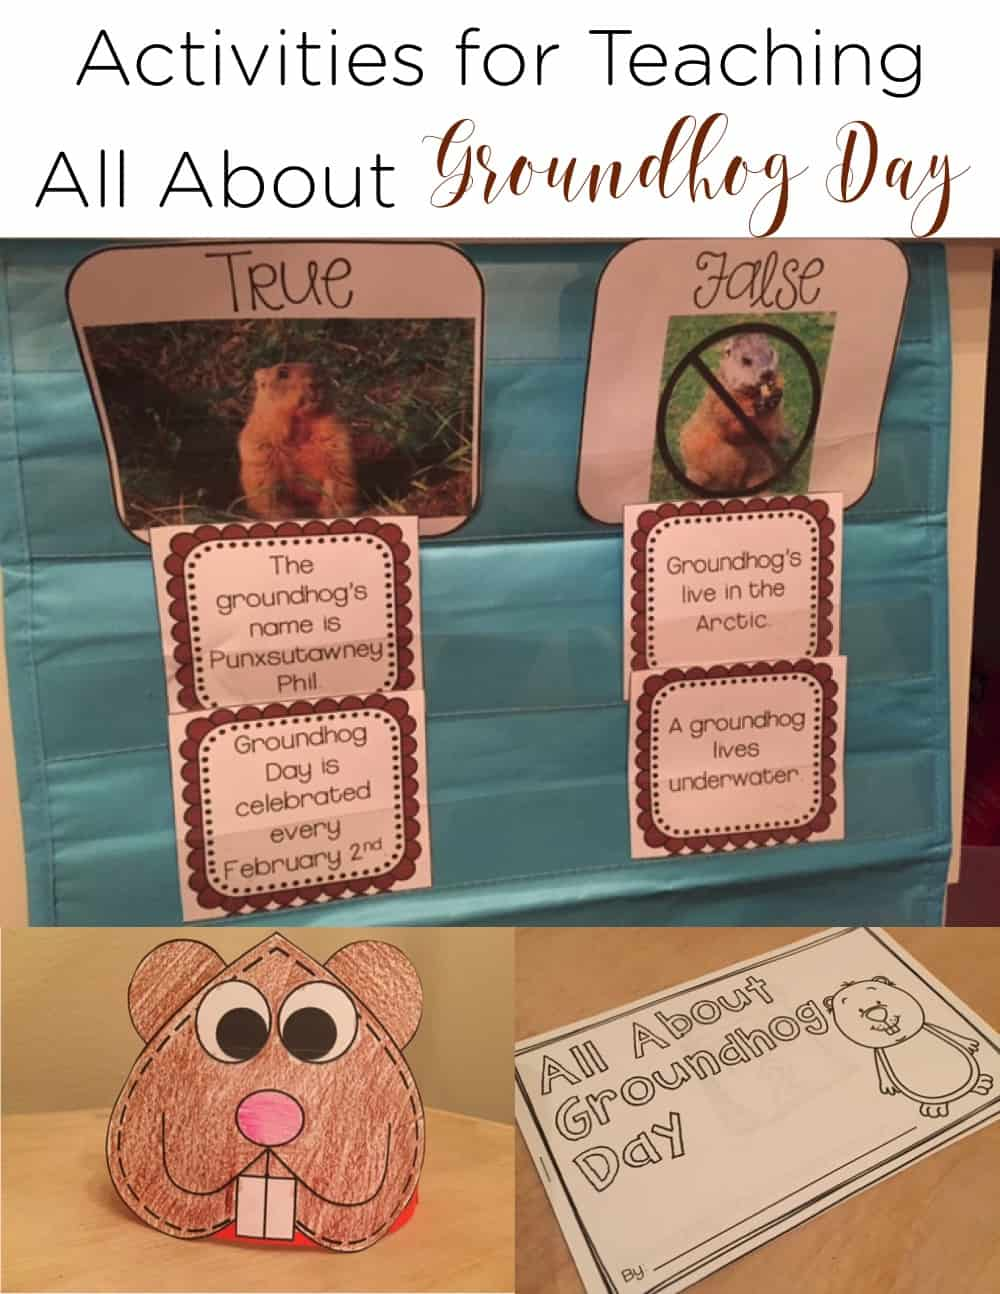 Groundhog Day is an exciting time for little learners! Teach them about why we celebrate this day, what a groundhog is, and the history behind the holiday! #GroundHogDay #FirstGrade